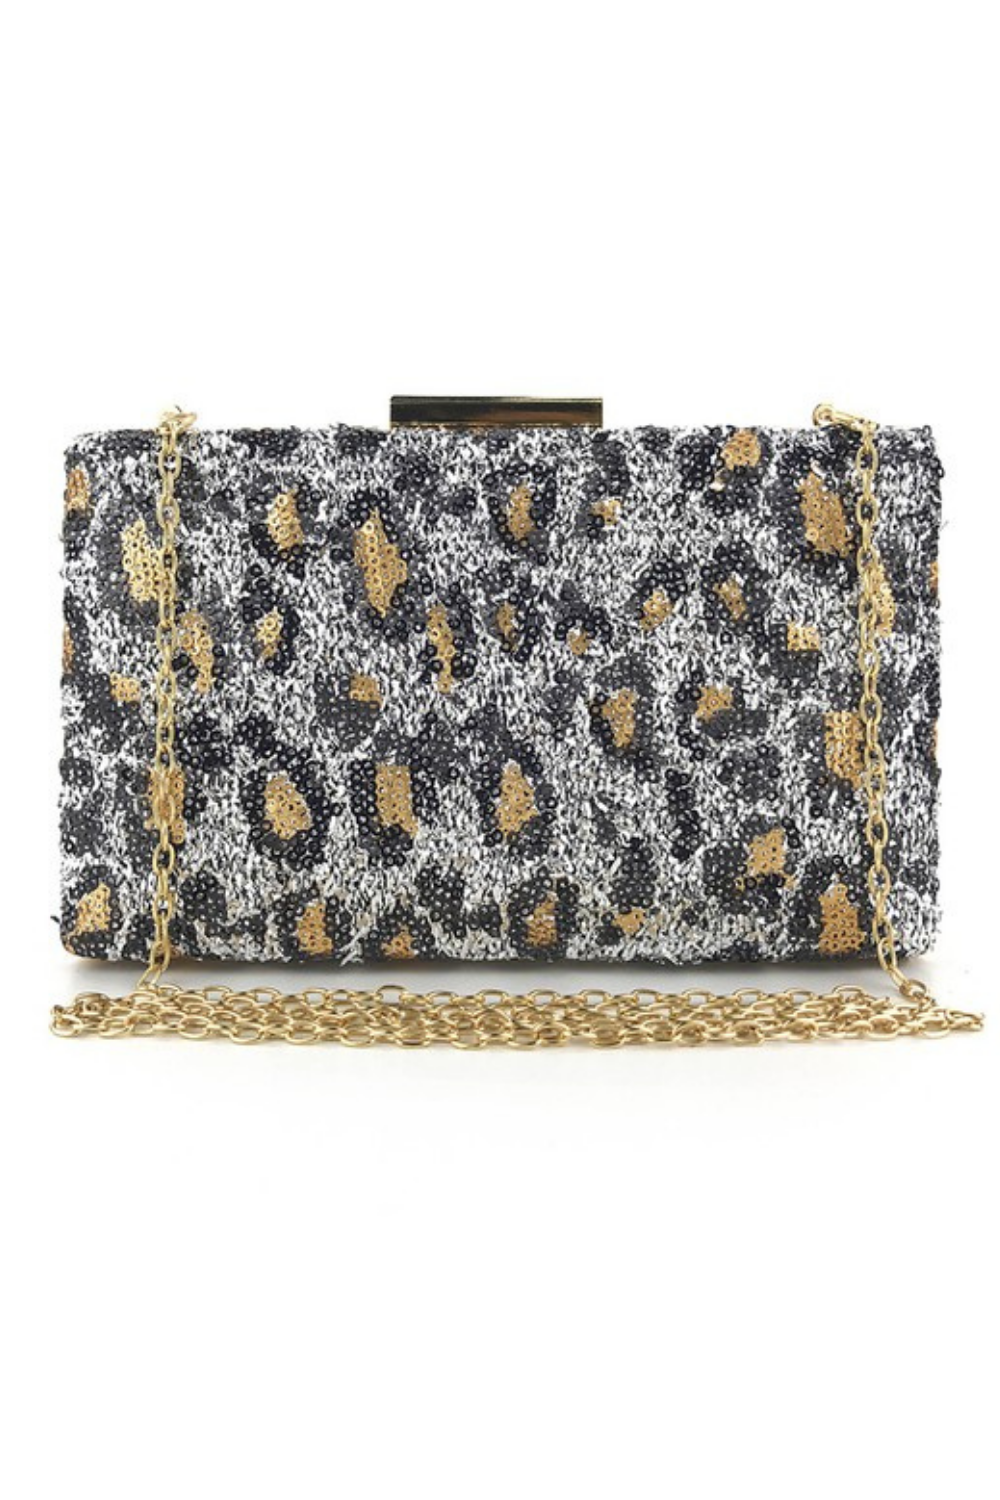 LEOPARDS A NEUTRAL BAG - SILVER